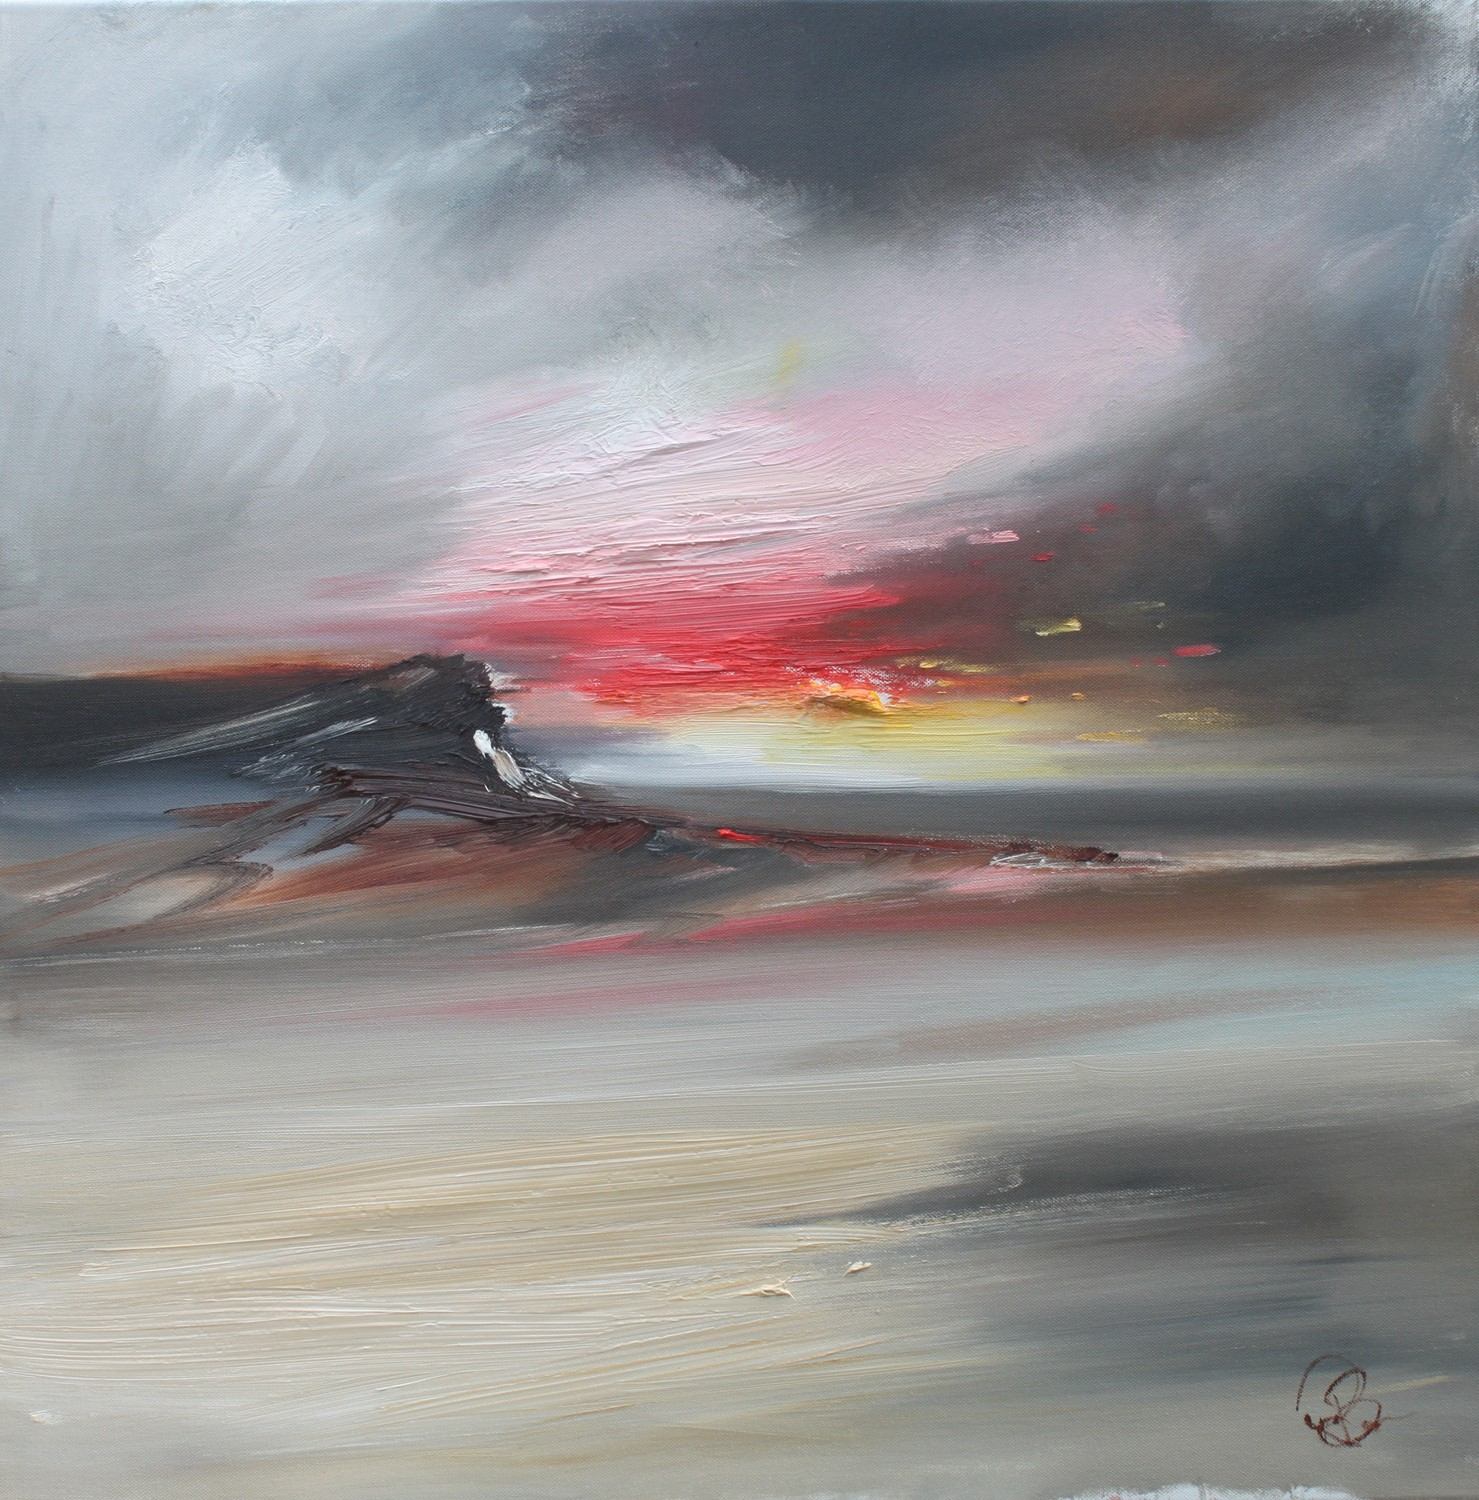 'Sunset to remember' by artist Rosanne Barr